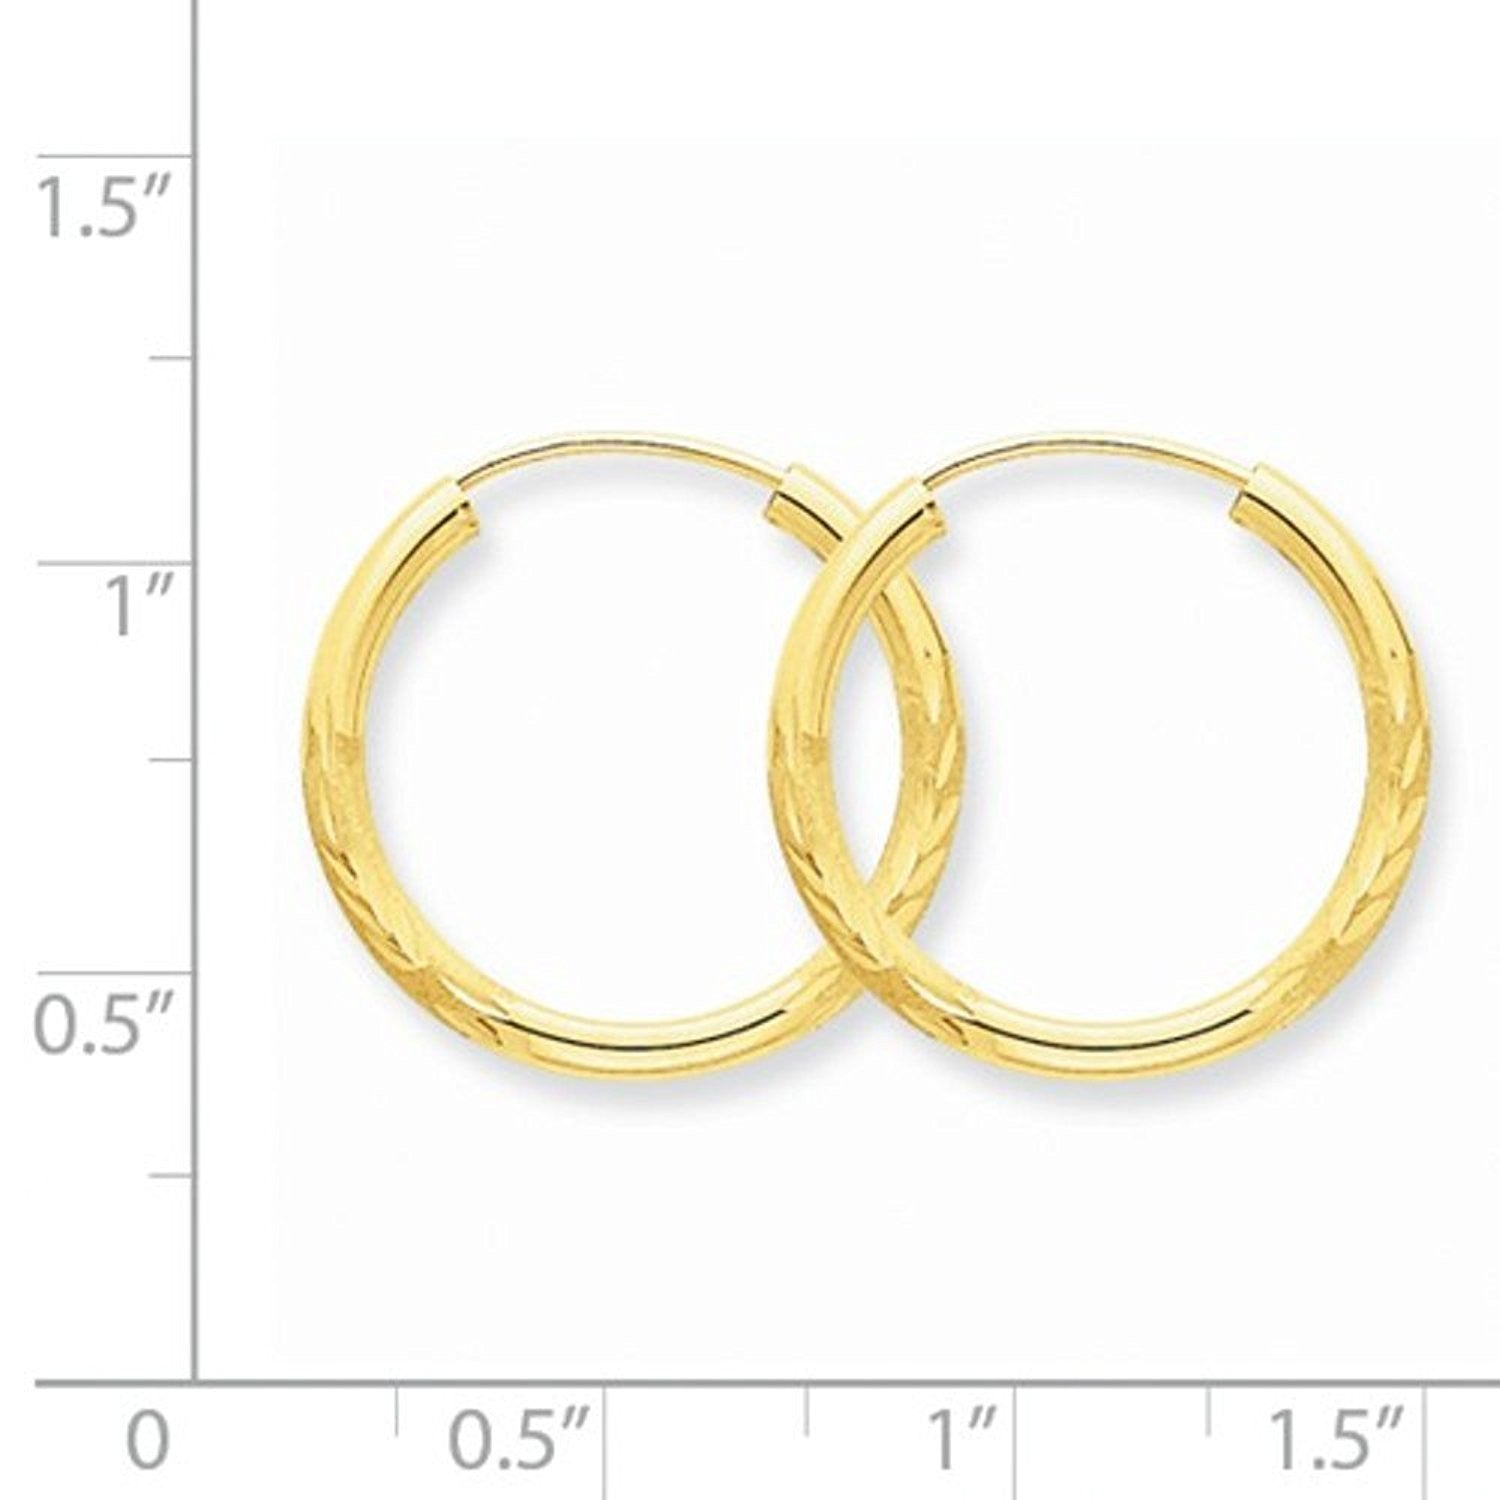 14K Yellow Gold 18mm Satin Textured Round Endless Hoop Earrings